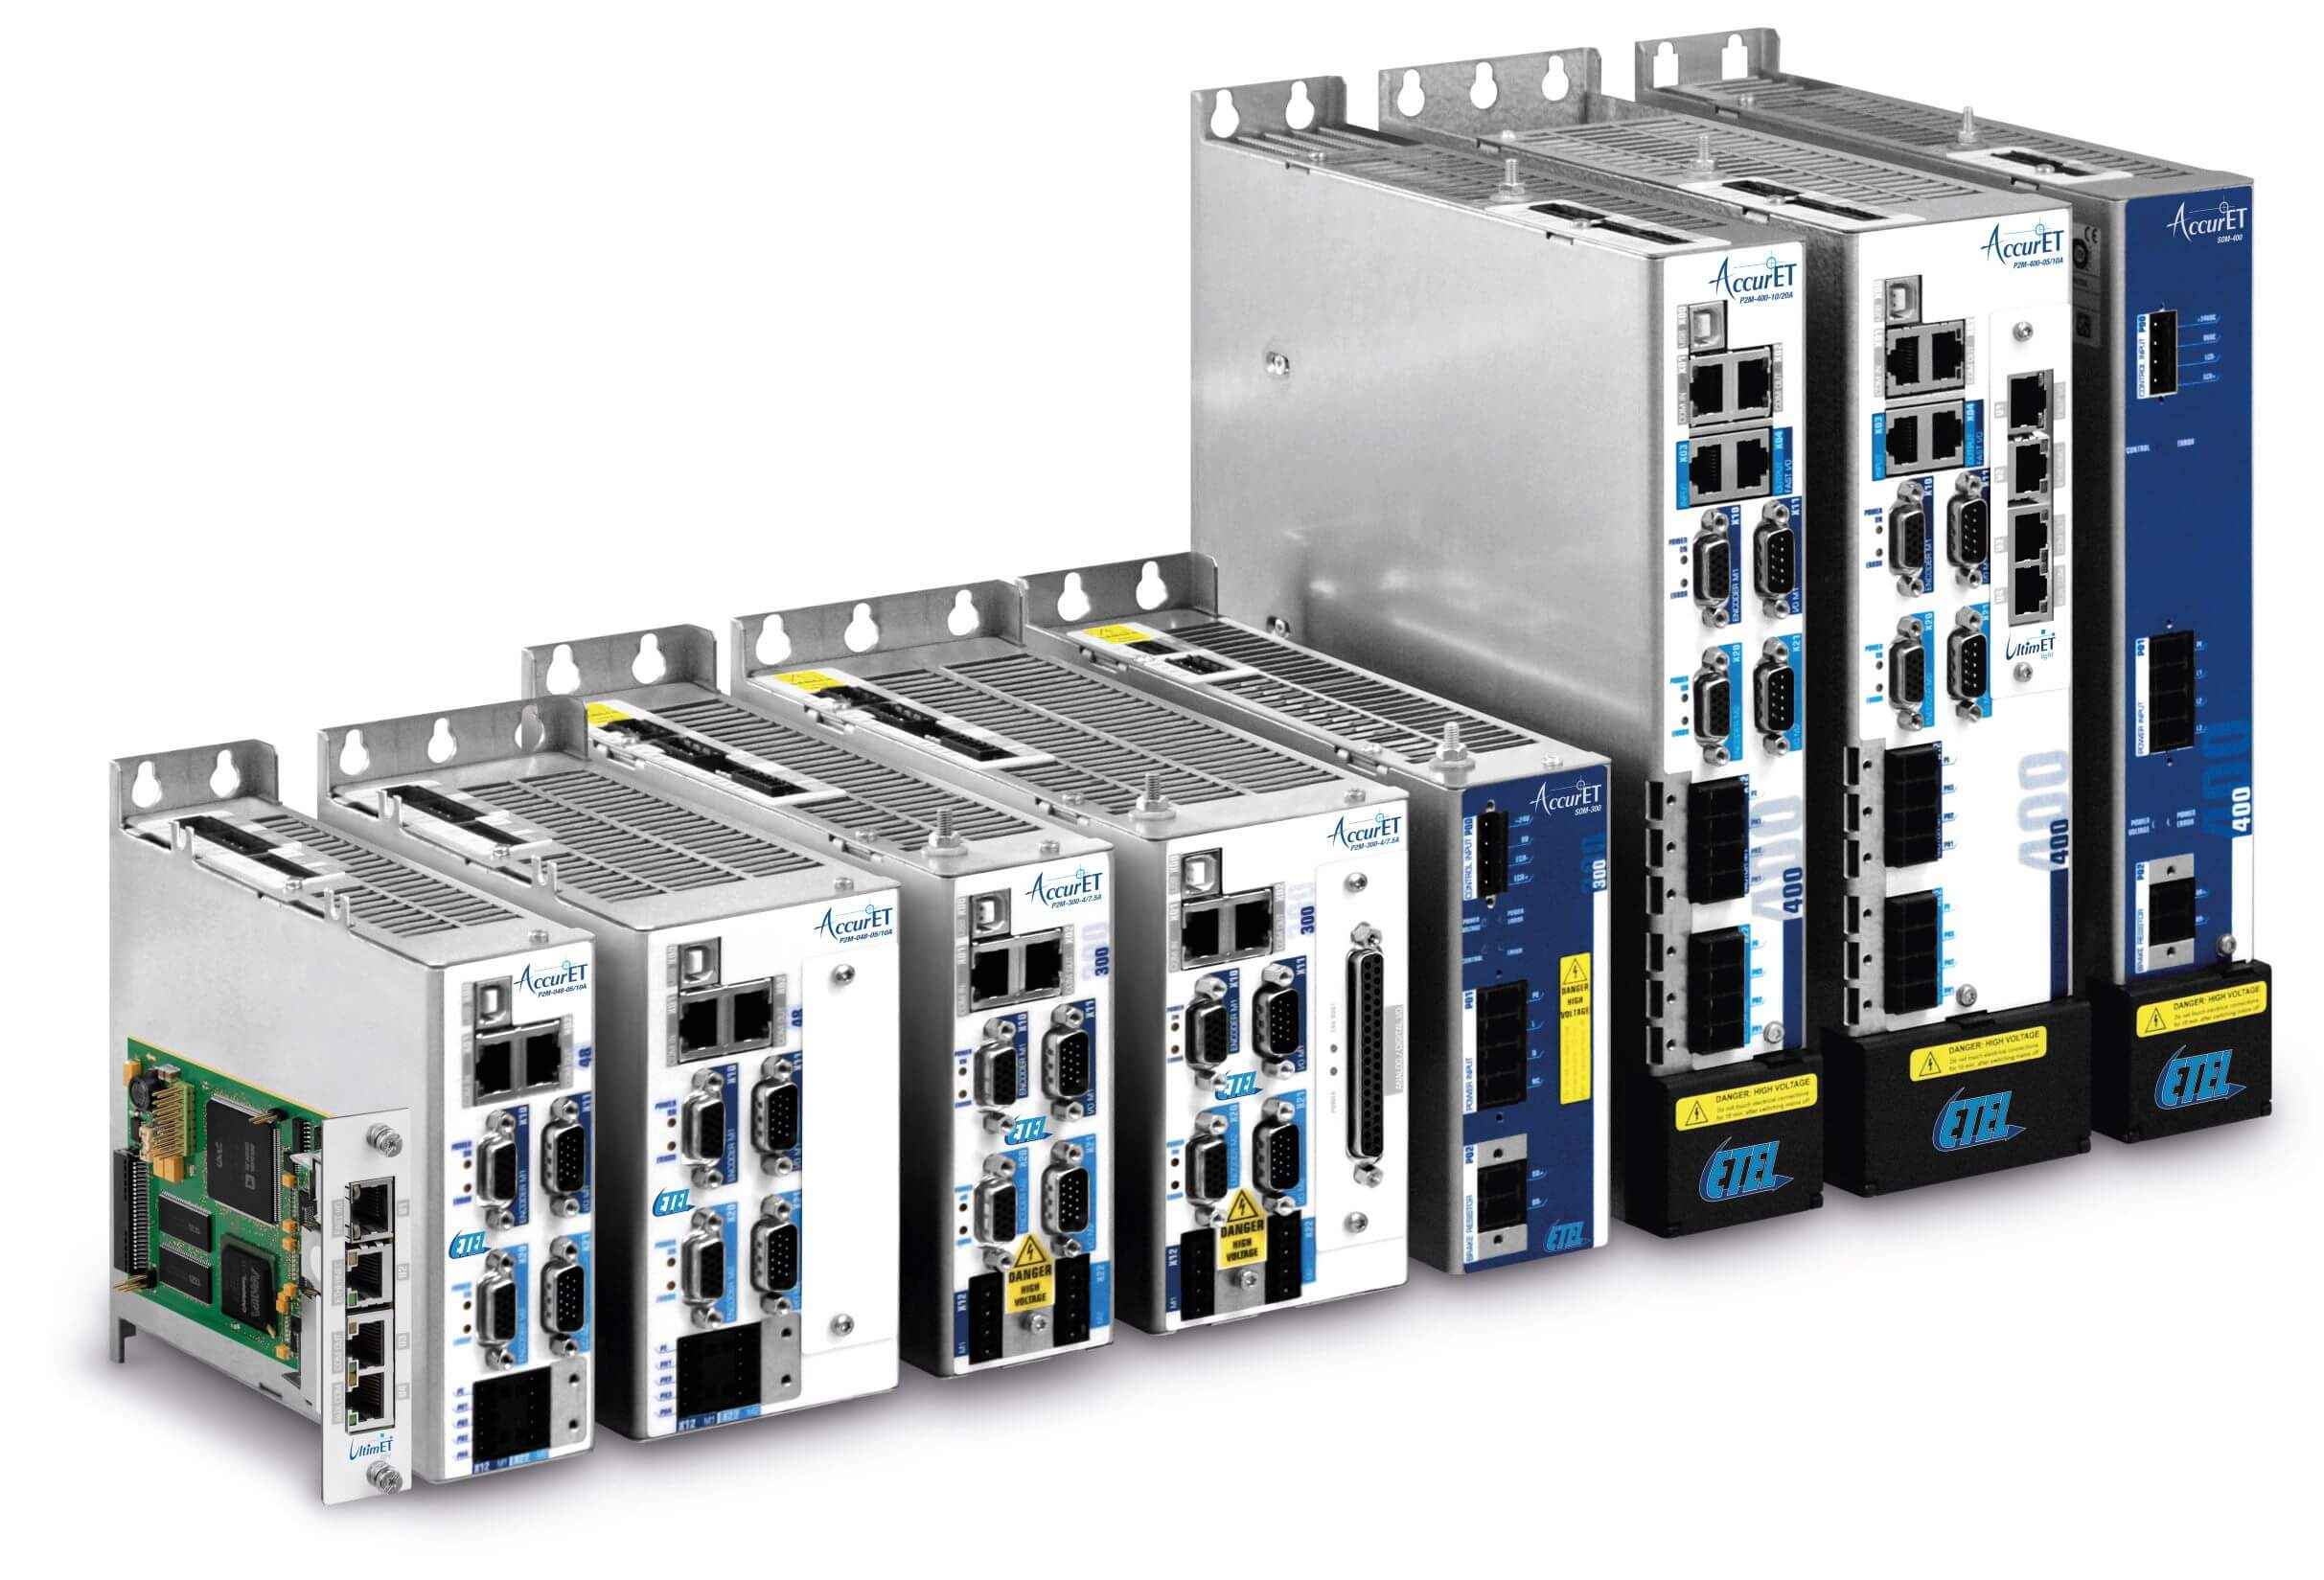 HEIDENHAIN announces ETEL-brand AccurET controls with EtherCAT compatibility